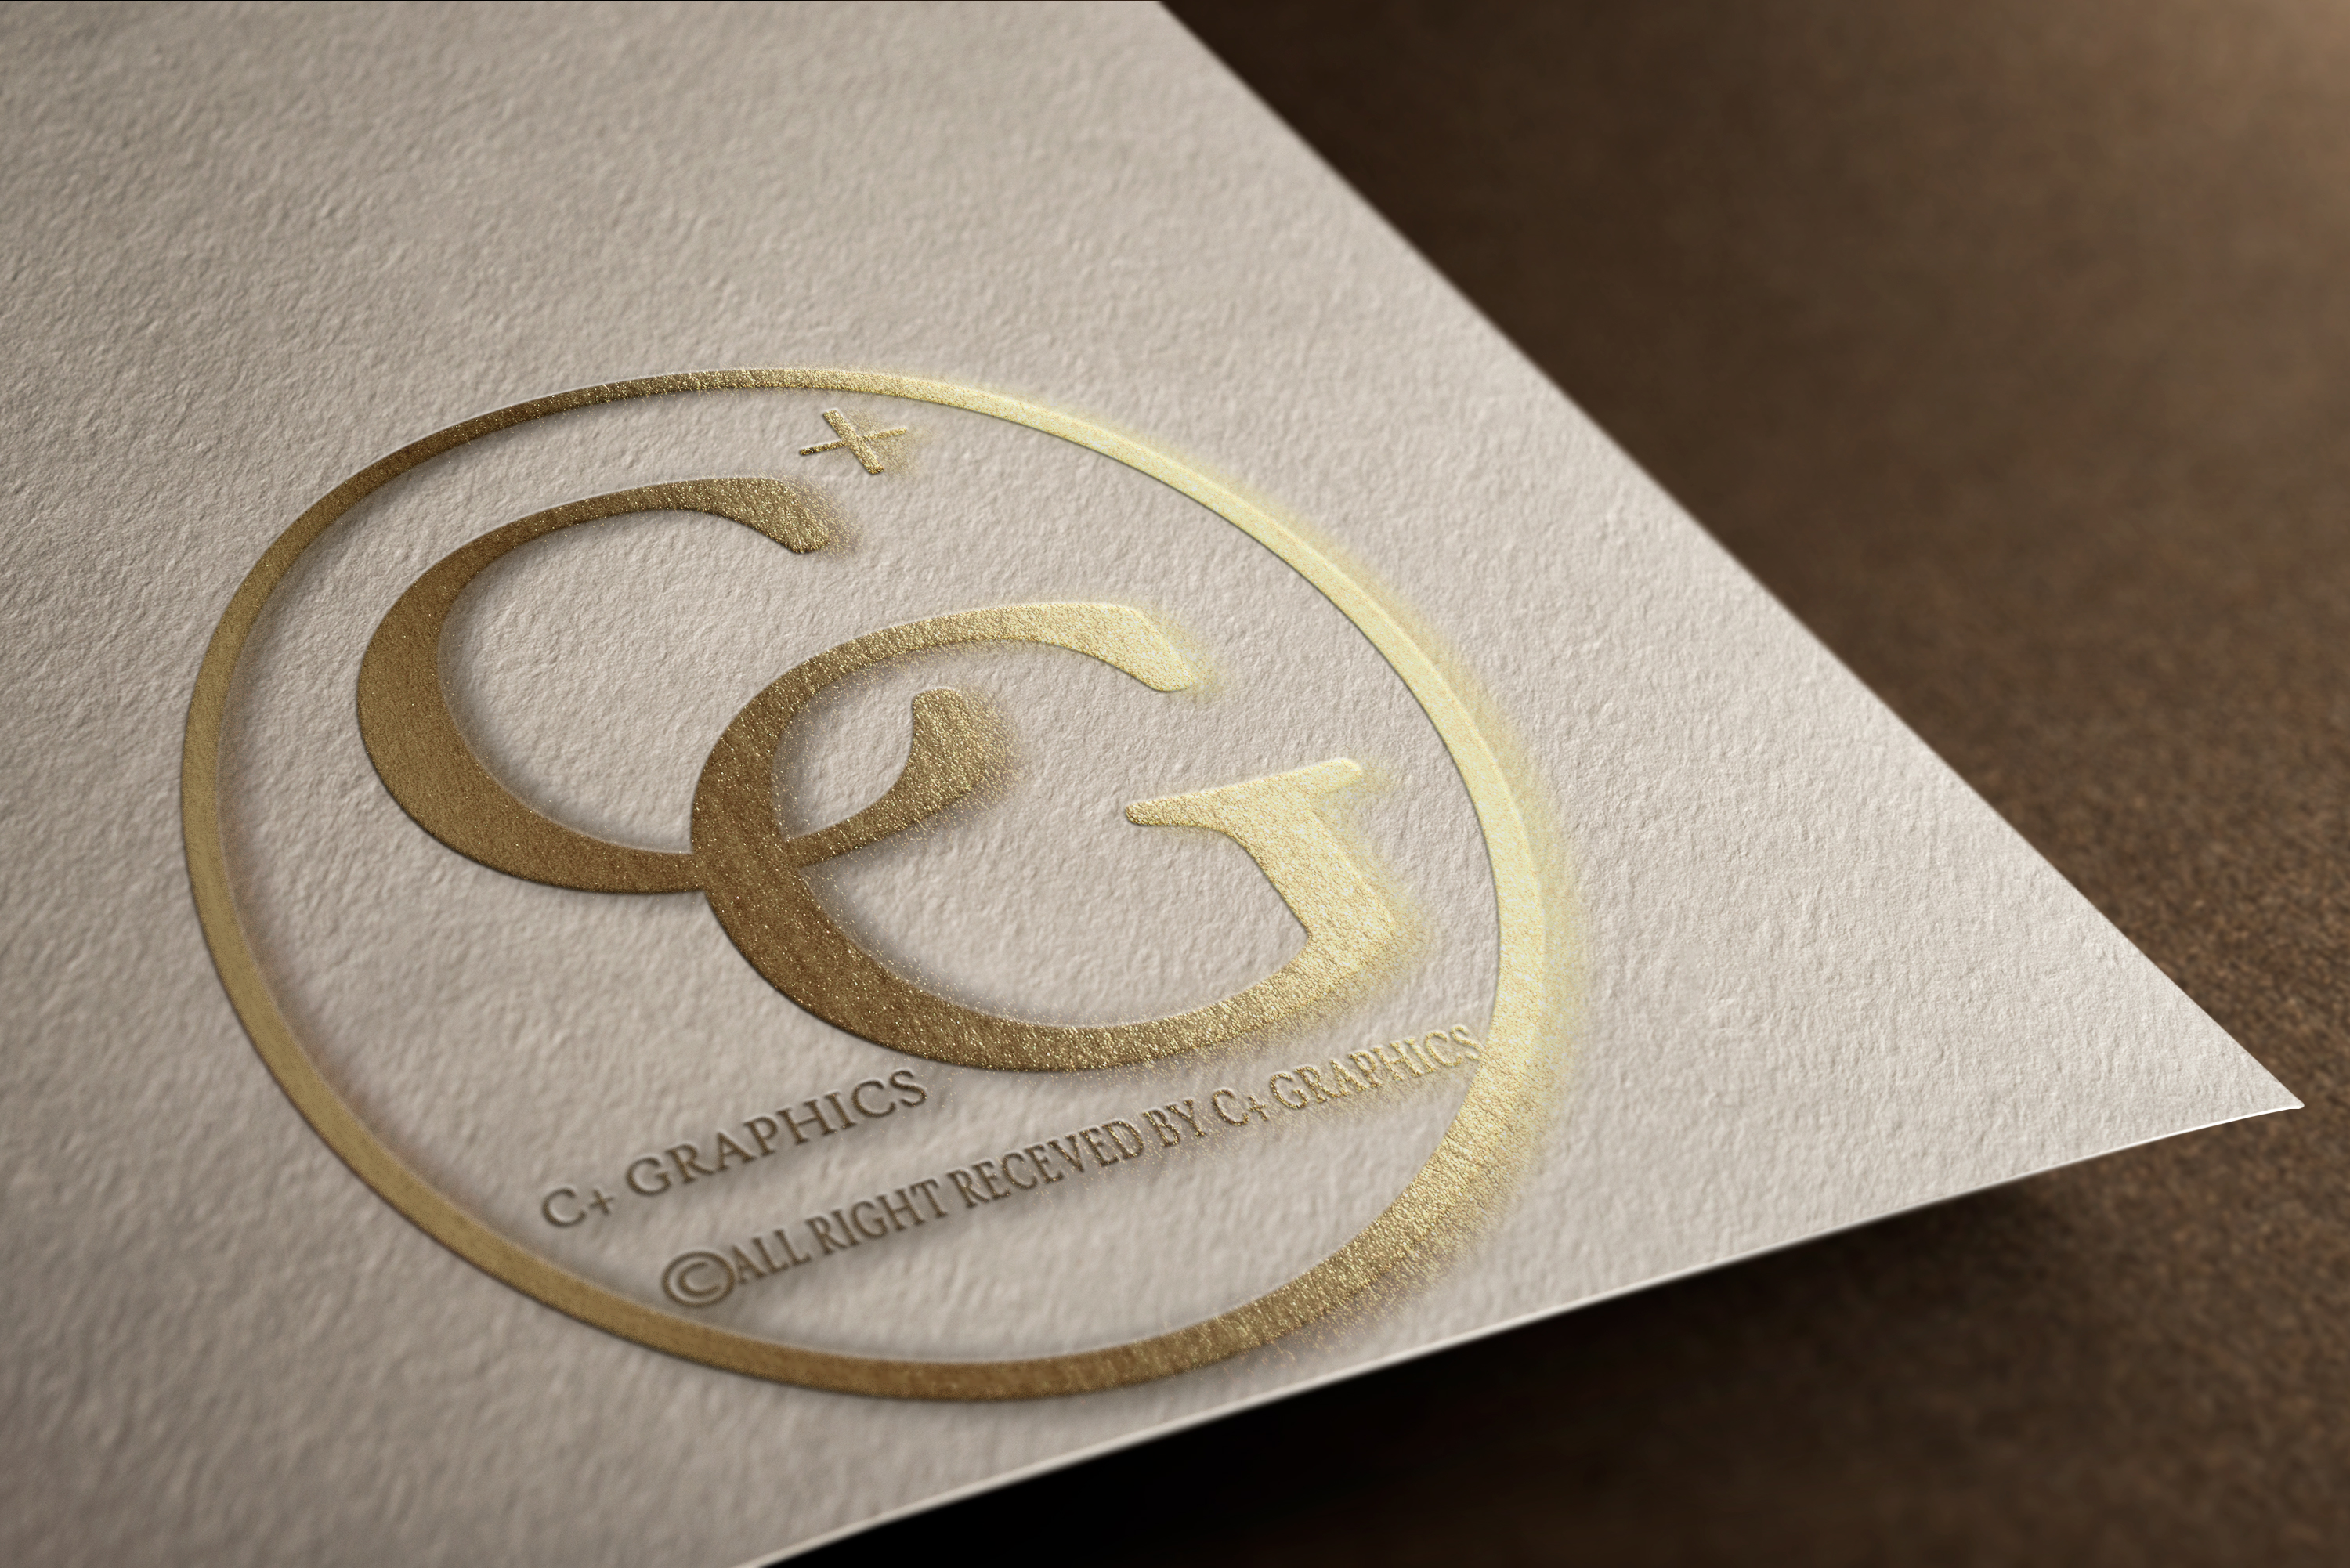 I will design luxury and professional logo